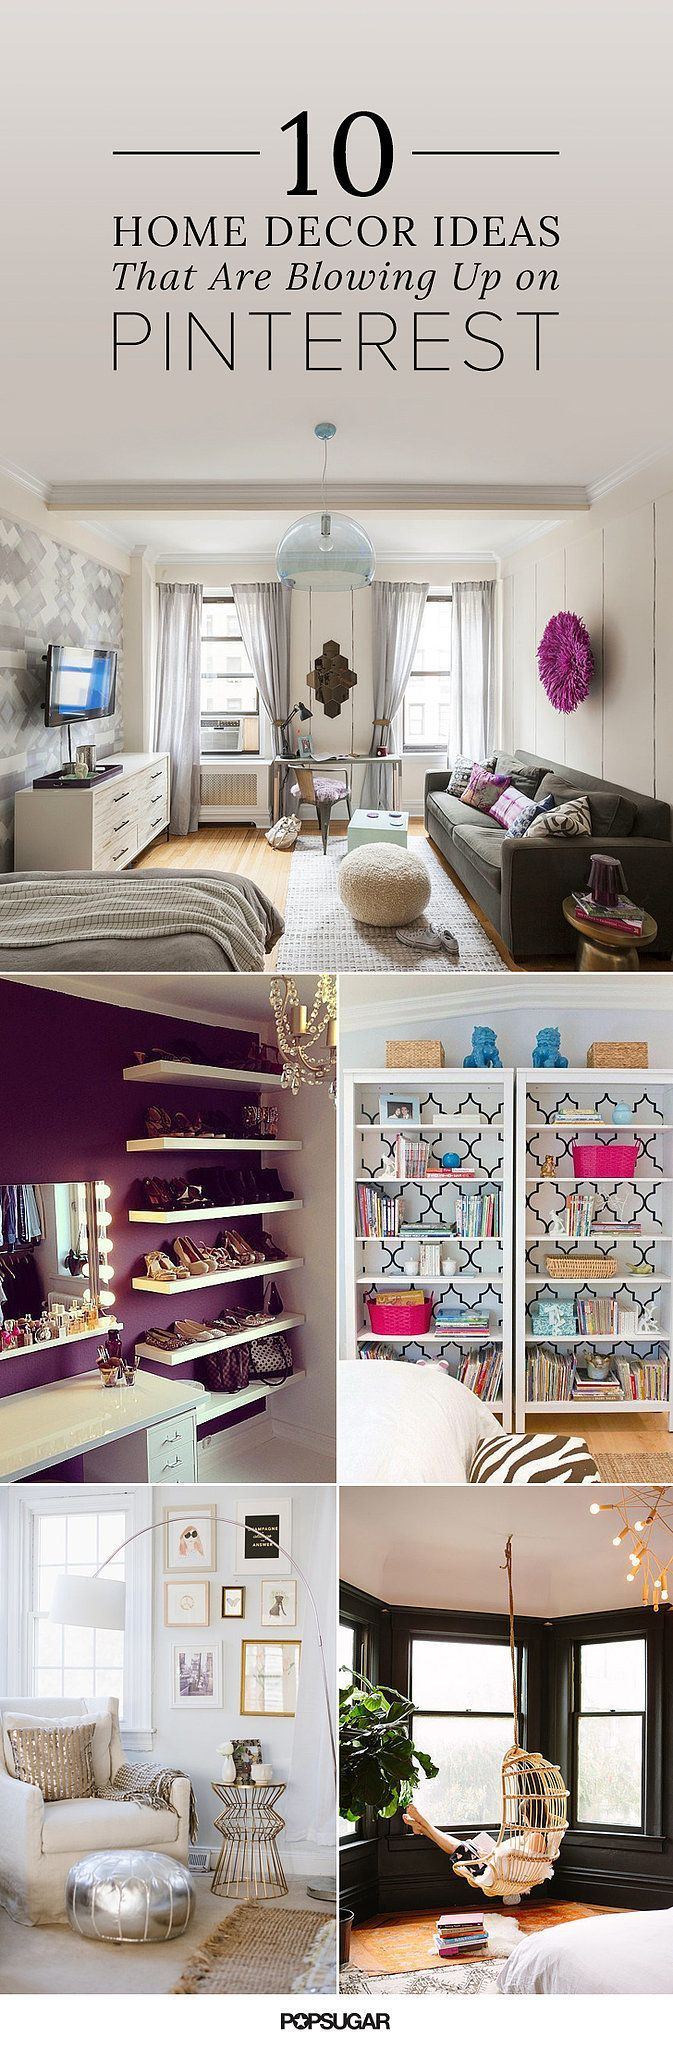 Home decorating trends blowing up on Pinterest